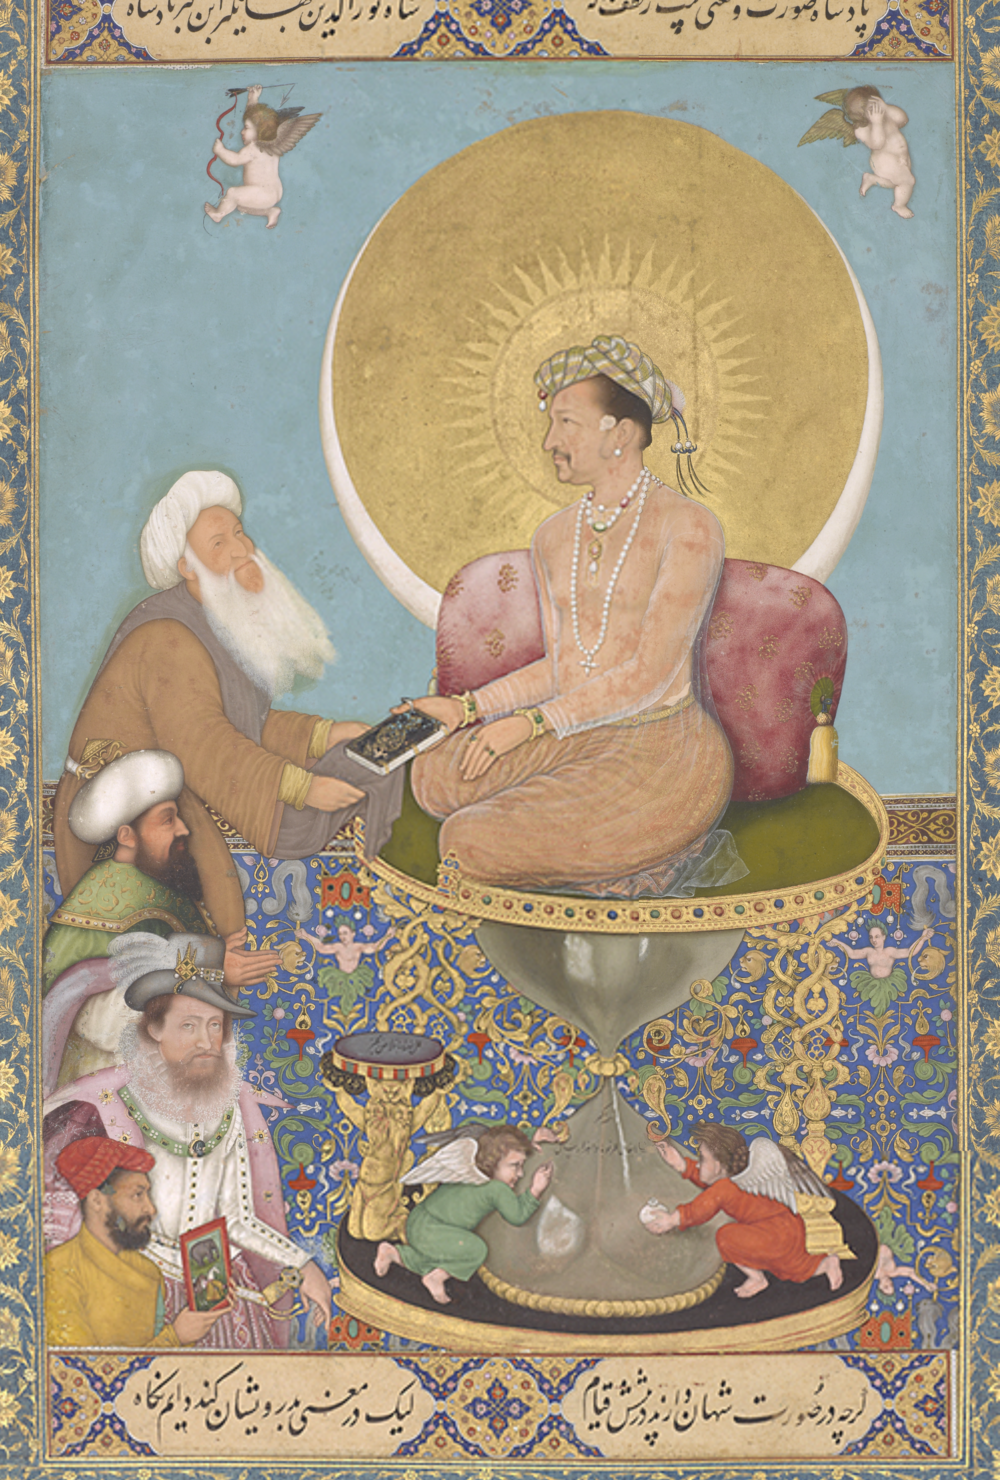 Jahangir Preferring a Sufi Shaykh to Kings  From the St. Petersburg Album Signed by Bichitr   Freer Gallery of Art F1942.15   Appears:  Thinking ,  New Directions